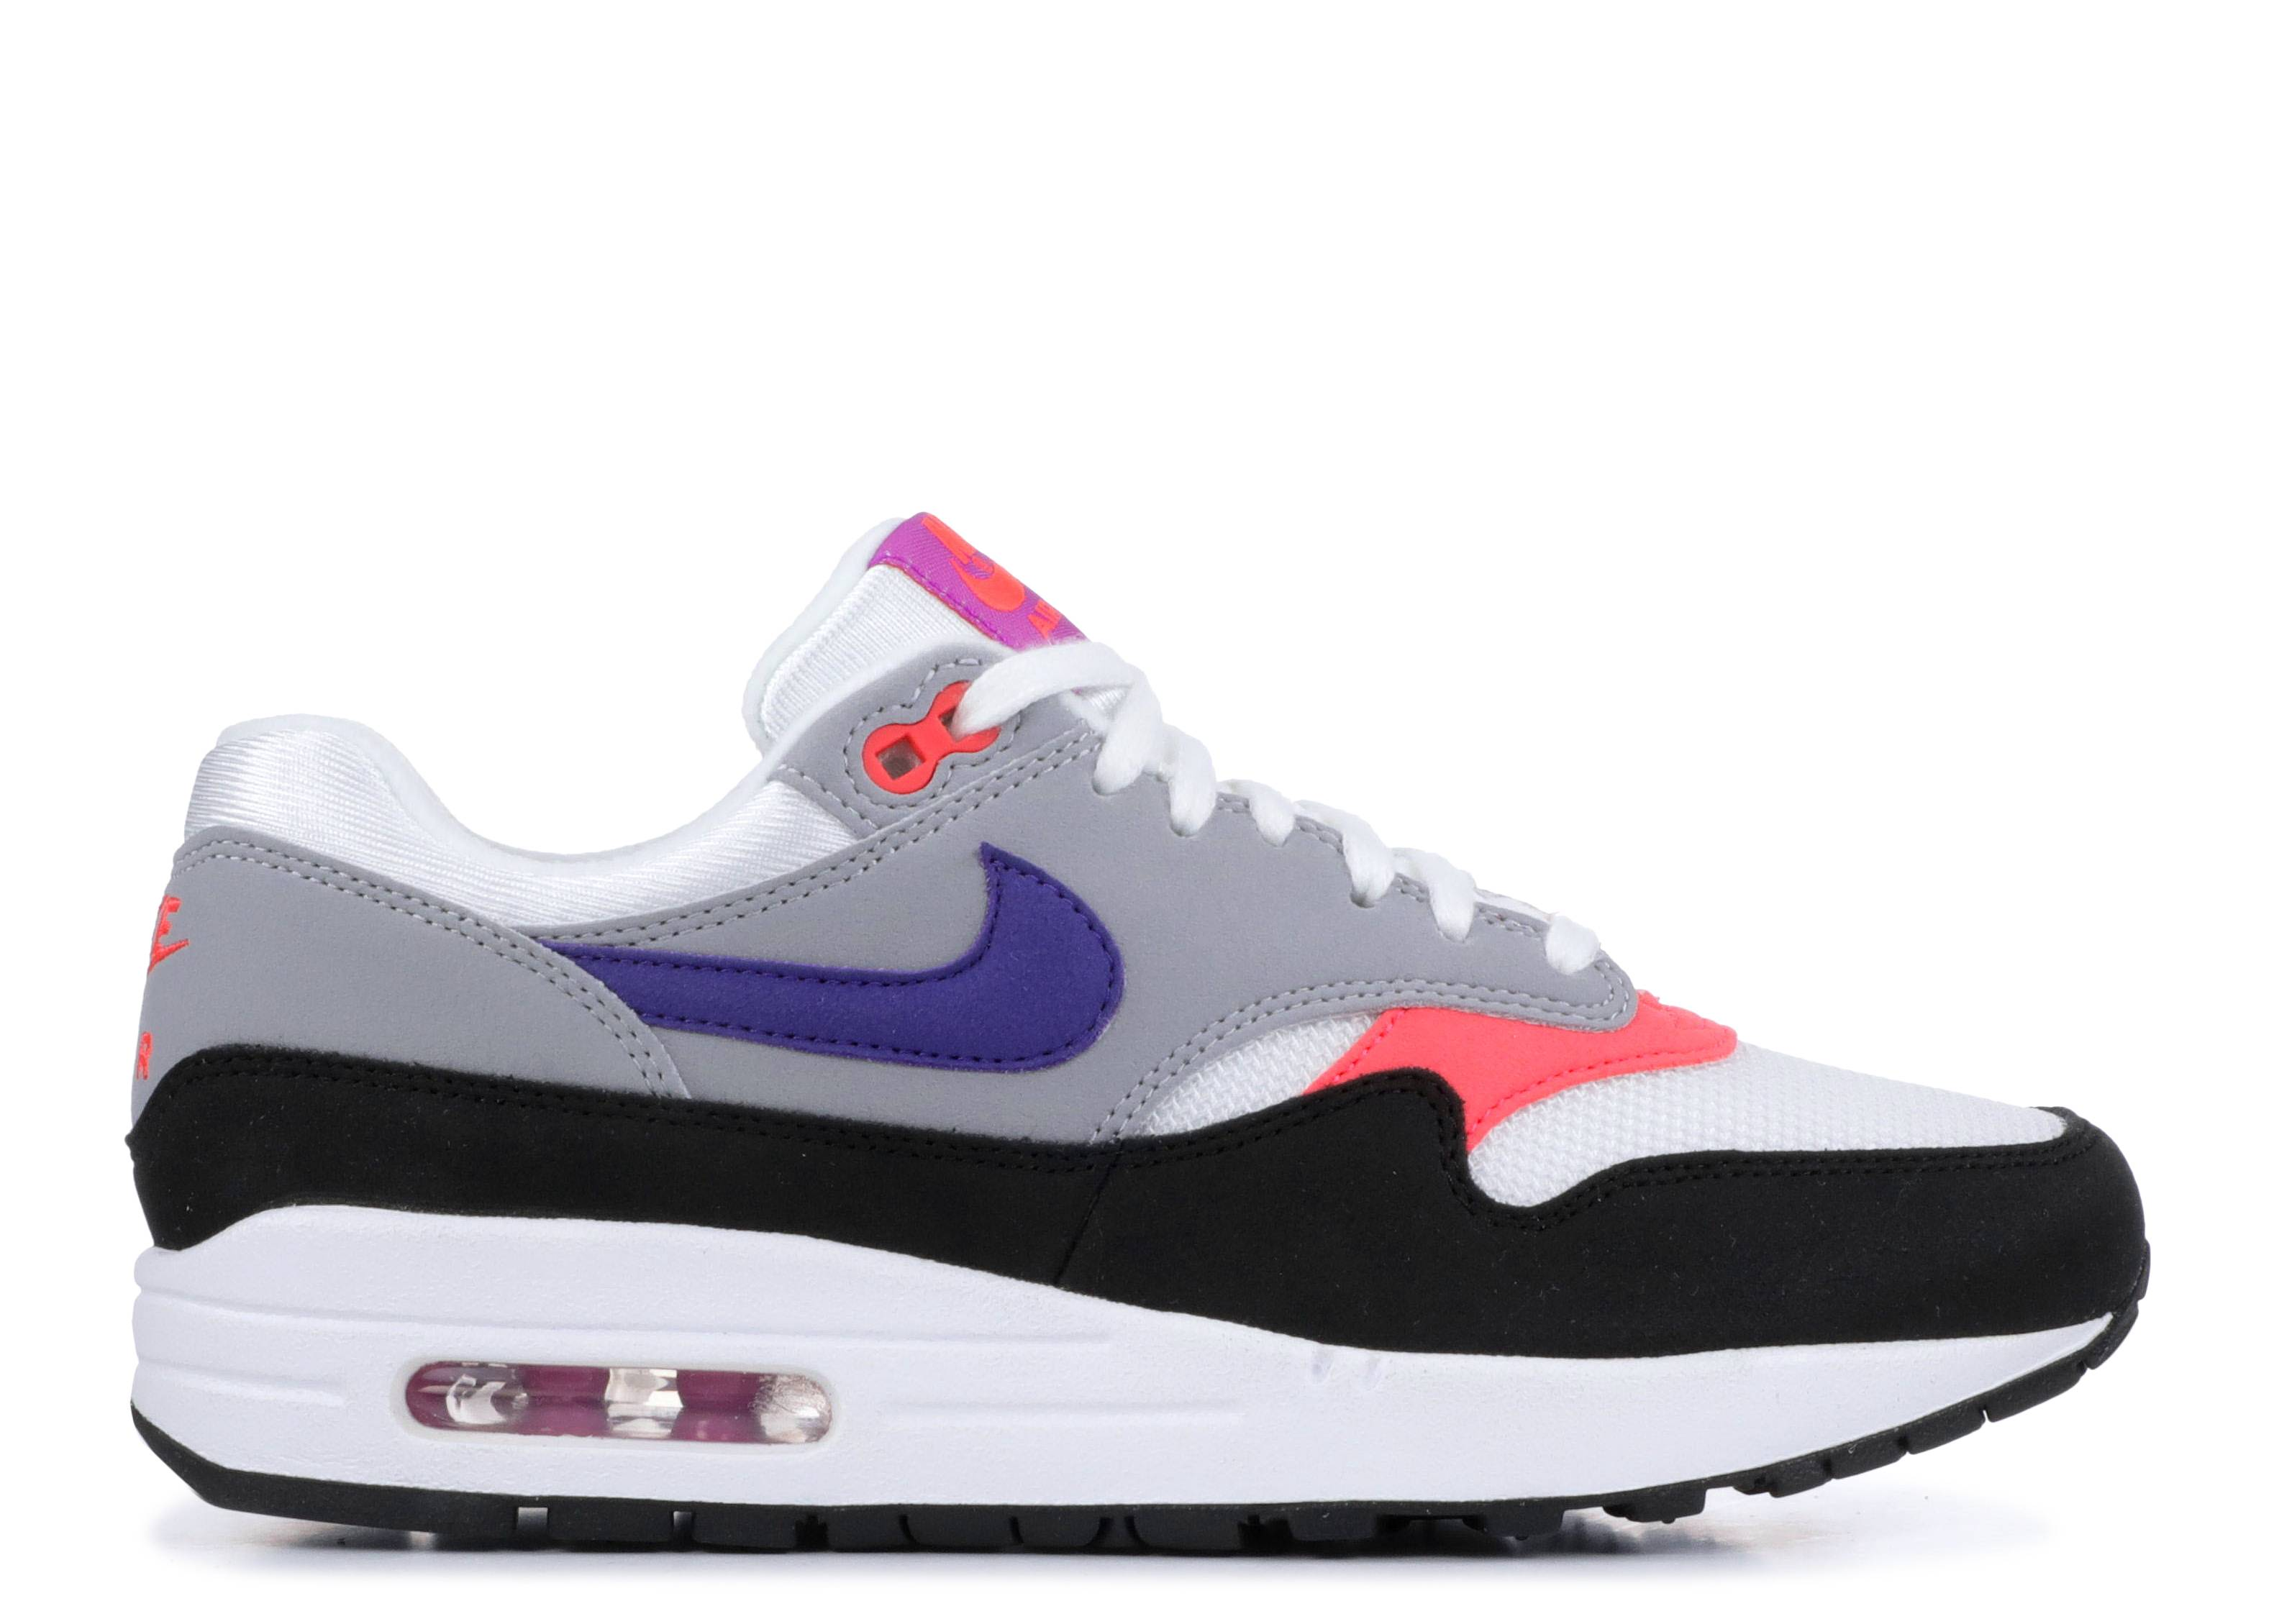 47f541f96e Wmns Air Max 1 - Nike - 319986 114 - white/court purple-wolf grey ...